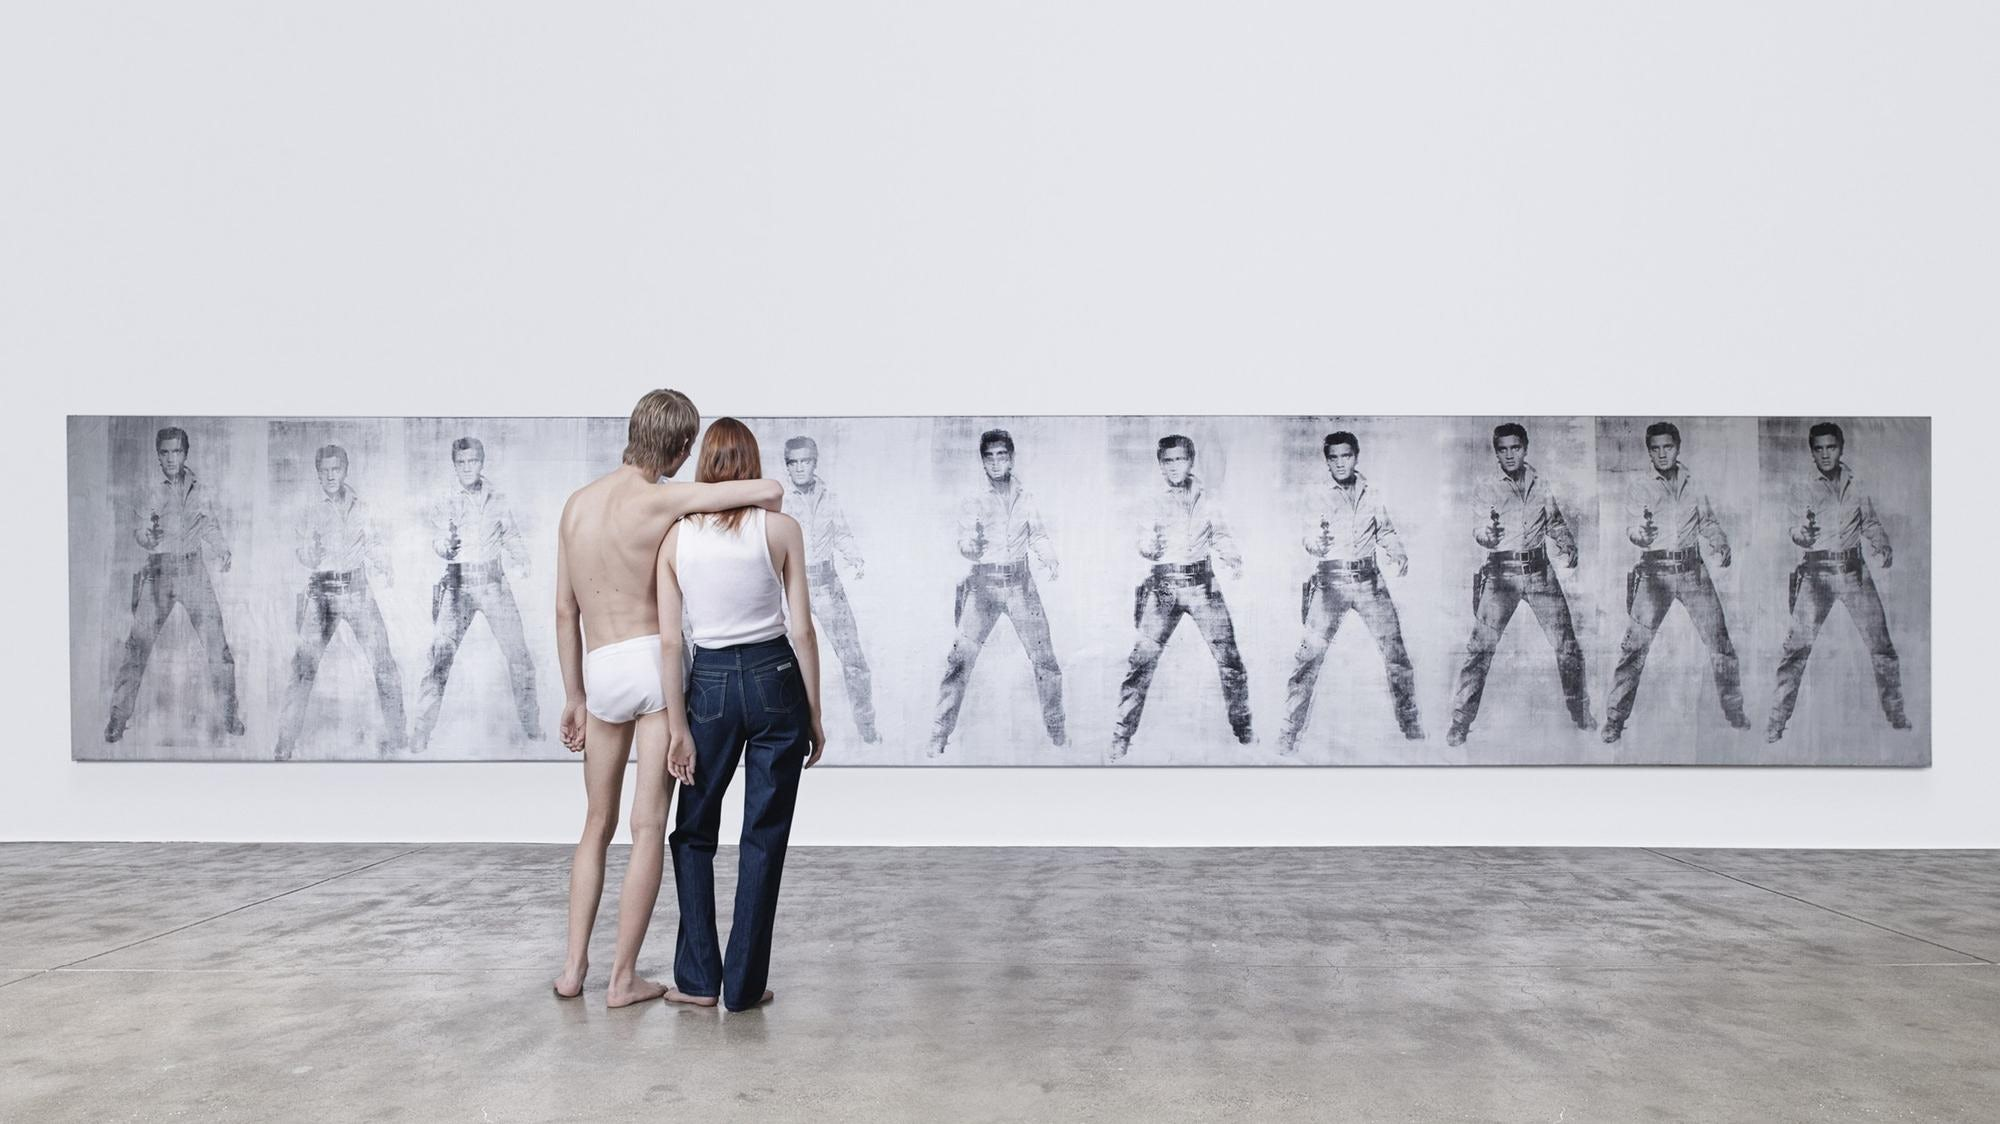 Raf Simons' first underwear and denim campaign for Calvin Klein | Source: Courtesy